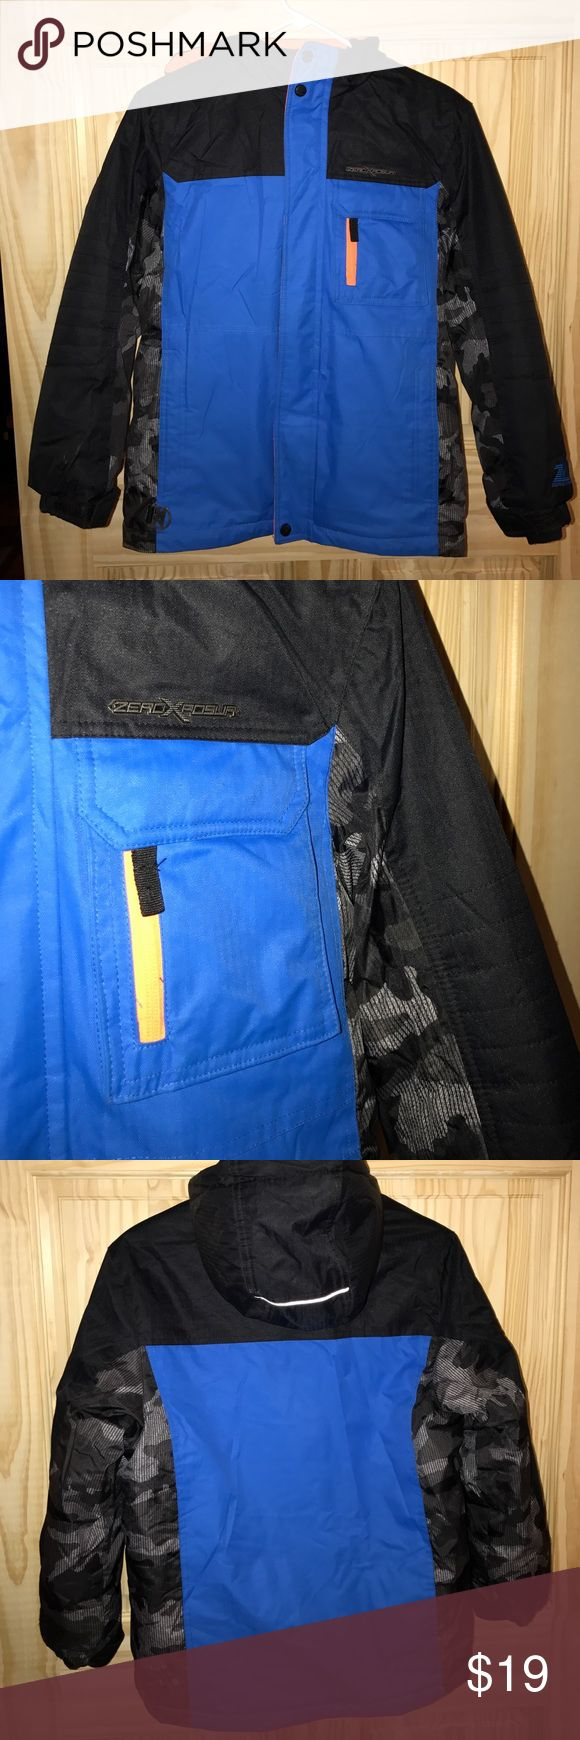 BOYS Winter Coat Royal blue and black boys winter jacket with orange accents. Hooded. See last pic for features. 18 inches across the waist. 23 inch sleeve.  24 inches long. NO TRADES. Reasonable offers welcomed. ZeroXposur Jackets & Coats Puffers